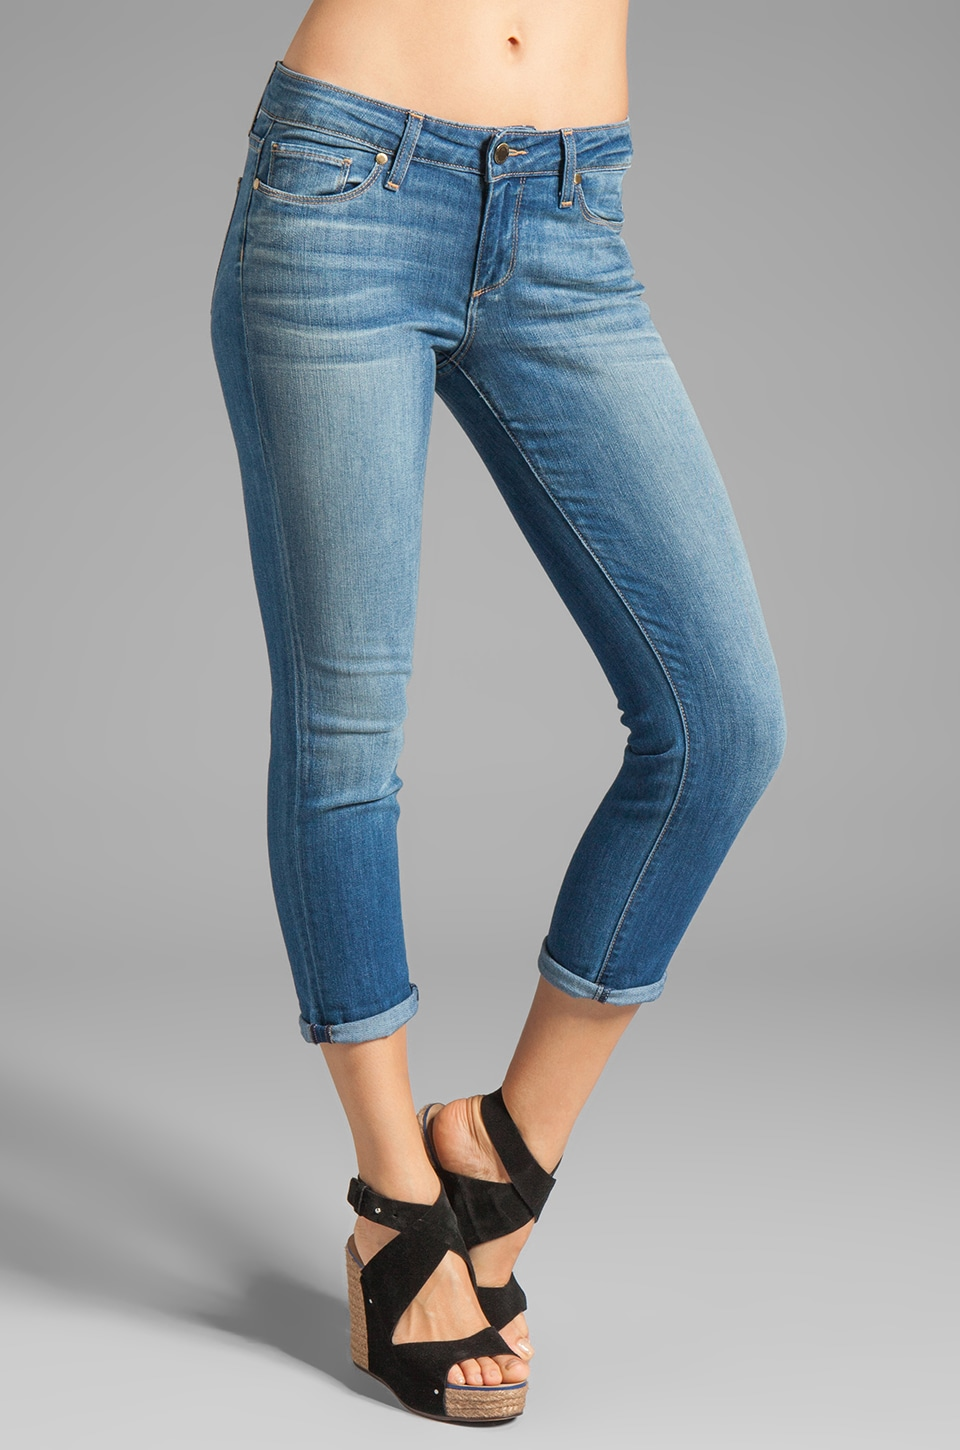 Paige Denim James Crop in Aero